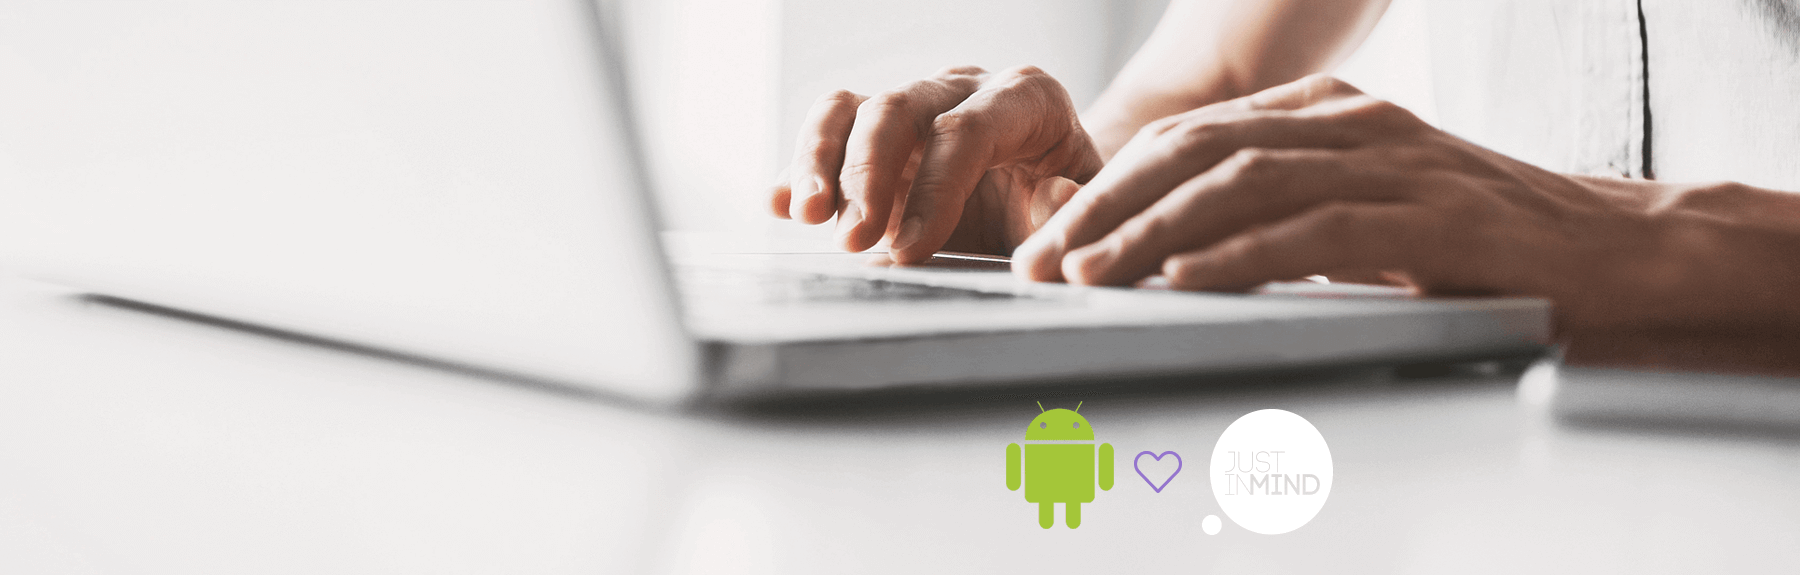 How to wireframe Android apps with Justinmind